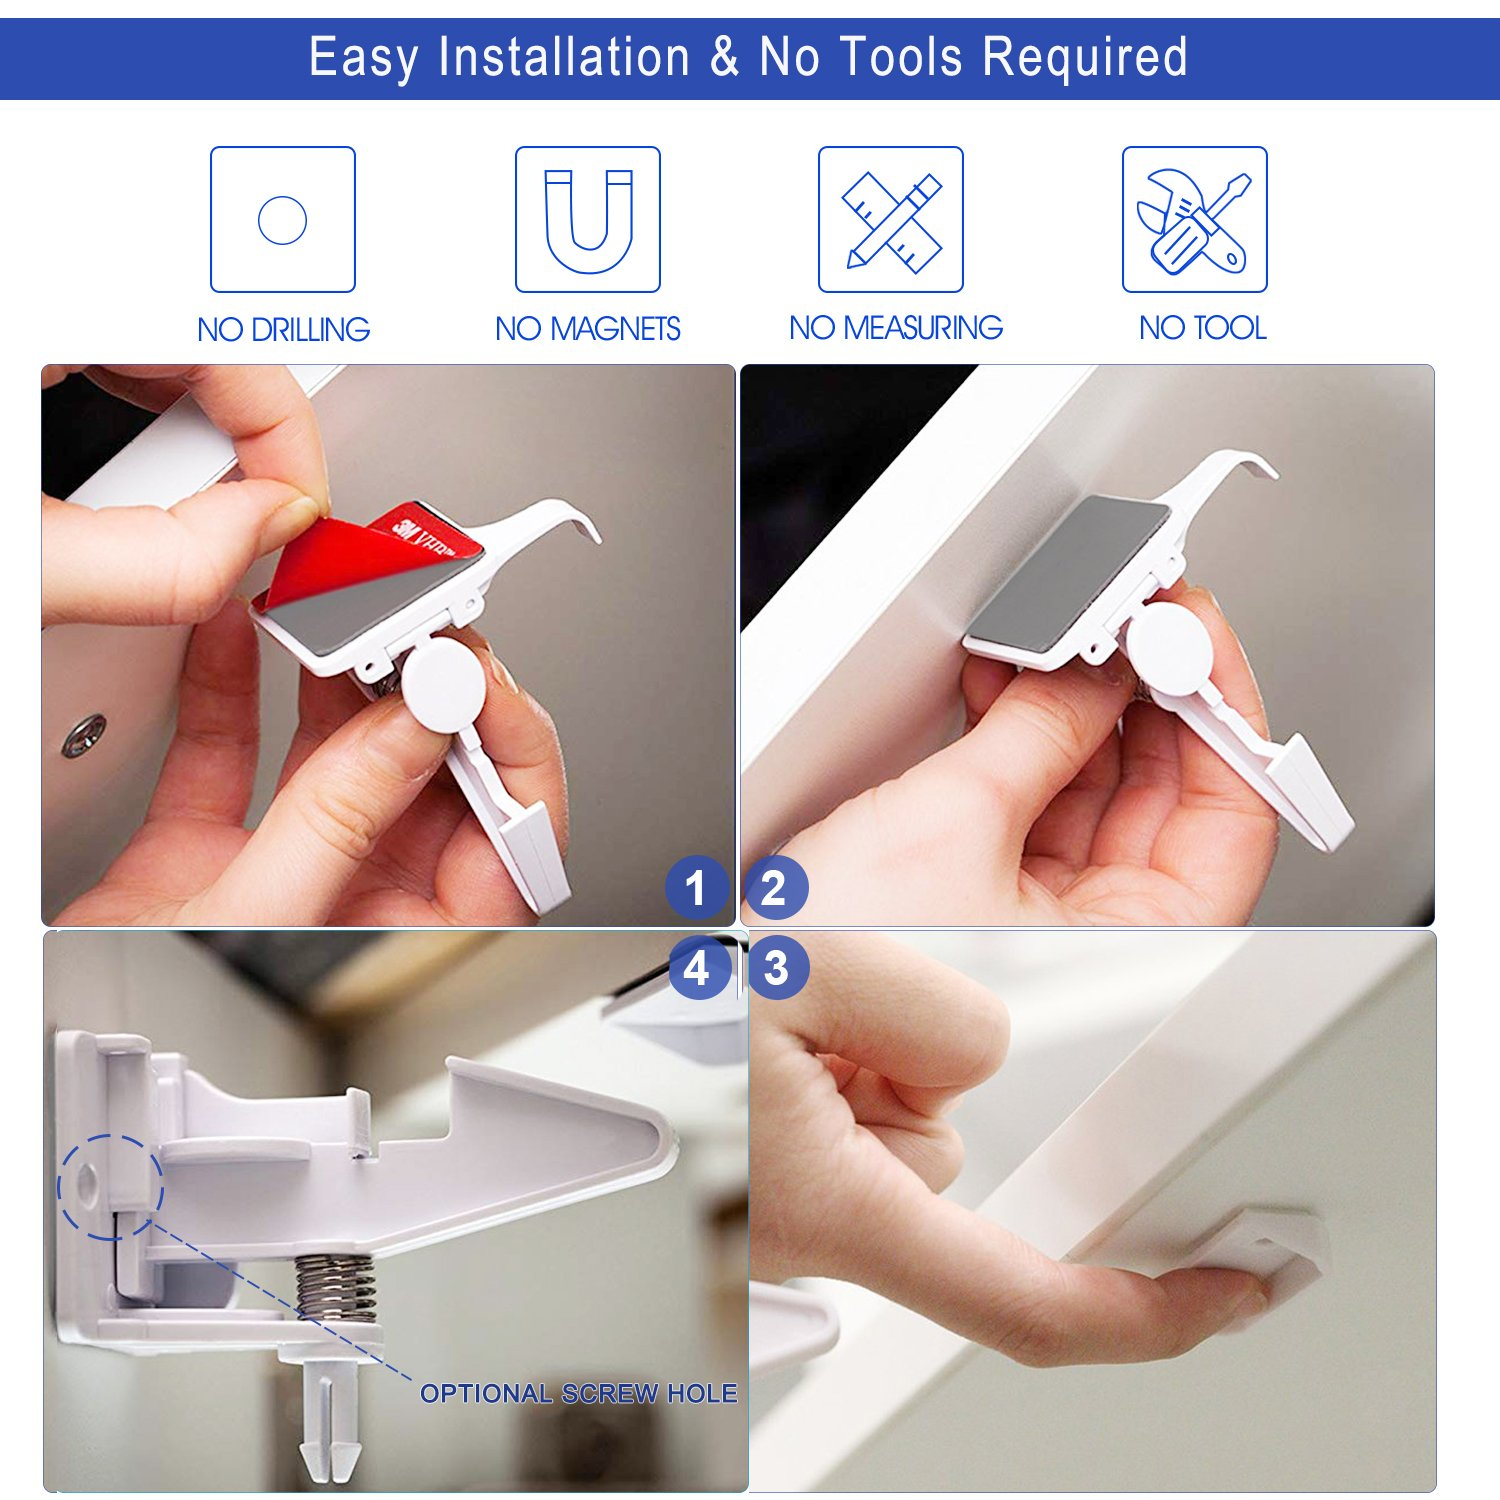 [10 Pack] Cabinet Locks Child Safety, Upgraded Baby Cabinet Safety Latches, No Tools Required, Invisible Design, Works for Most Cabinets, Drawers, Closets by AOSTAR (Image #3)